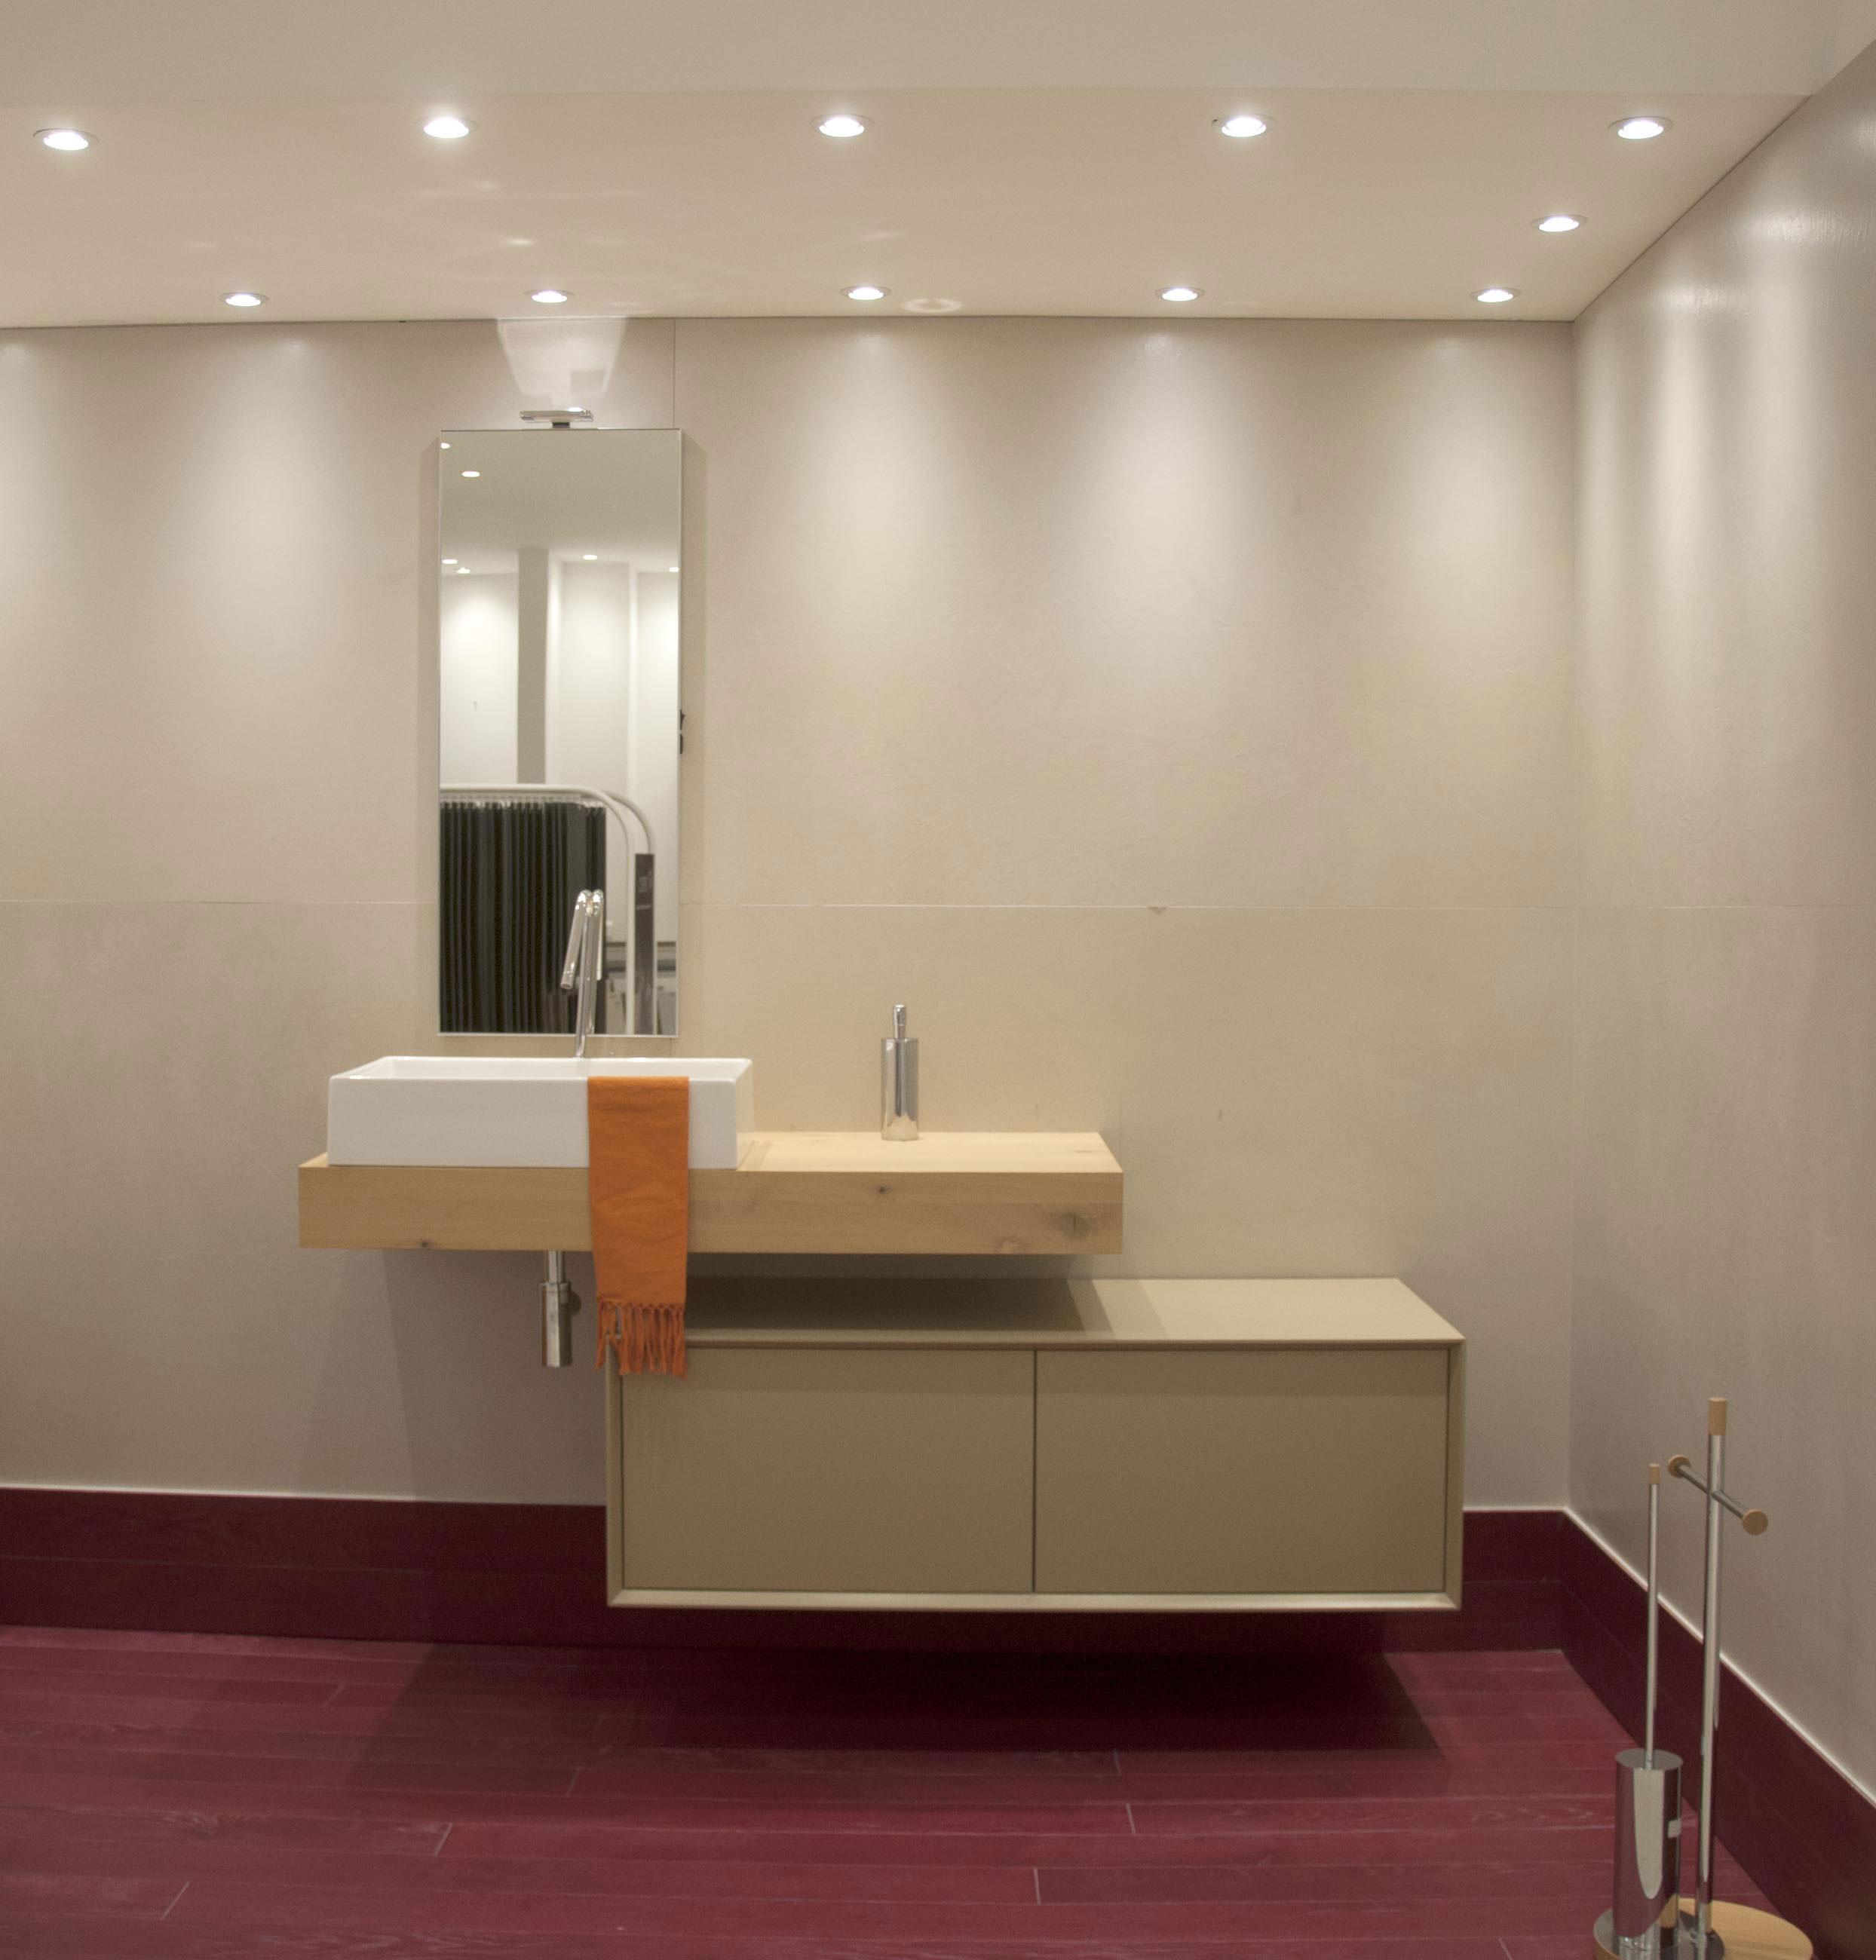 Letti le fablier foto for Arredamento country roma